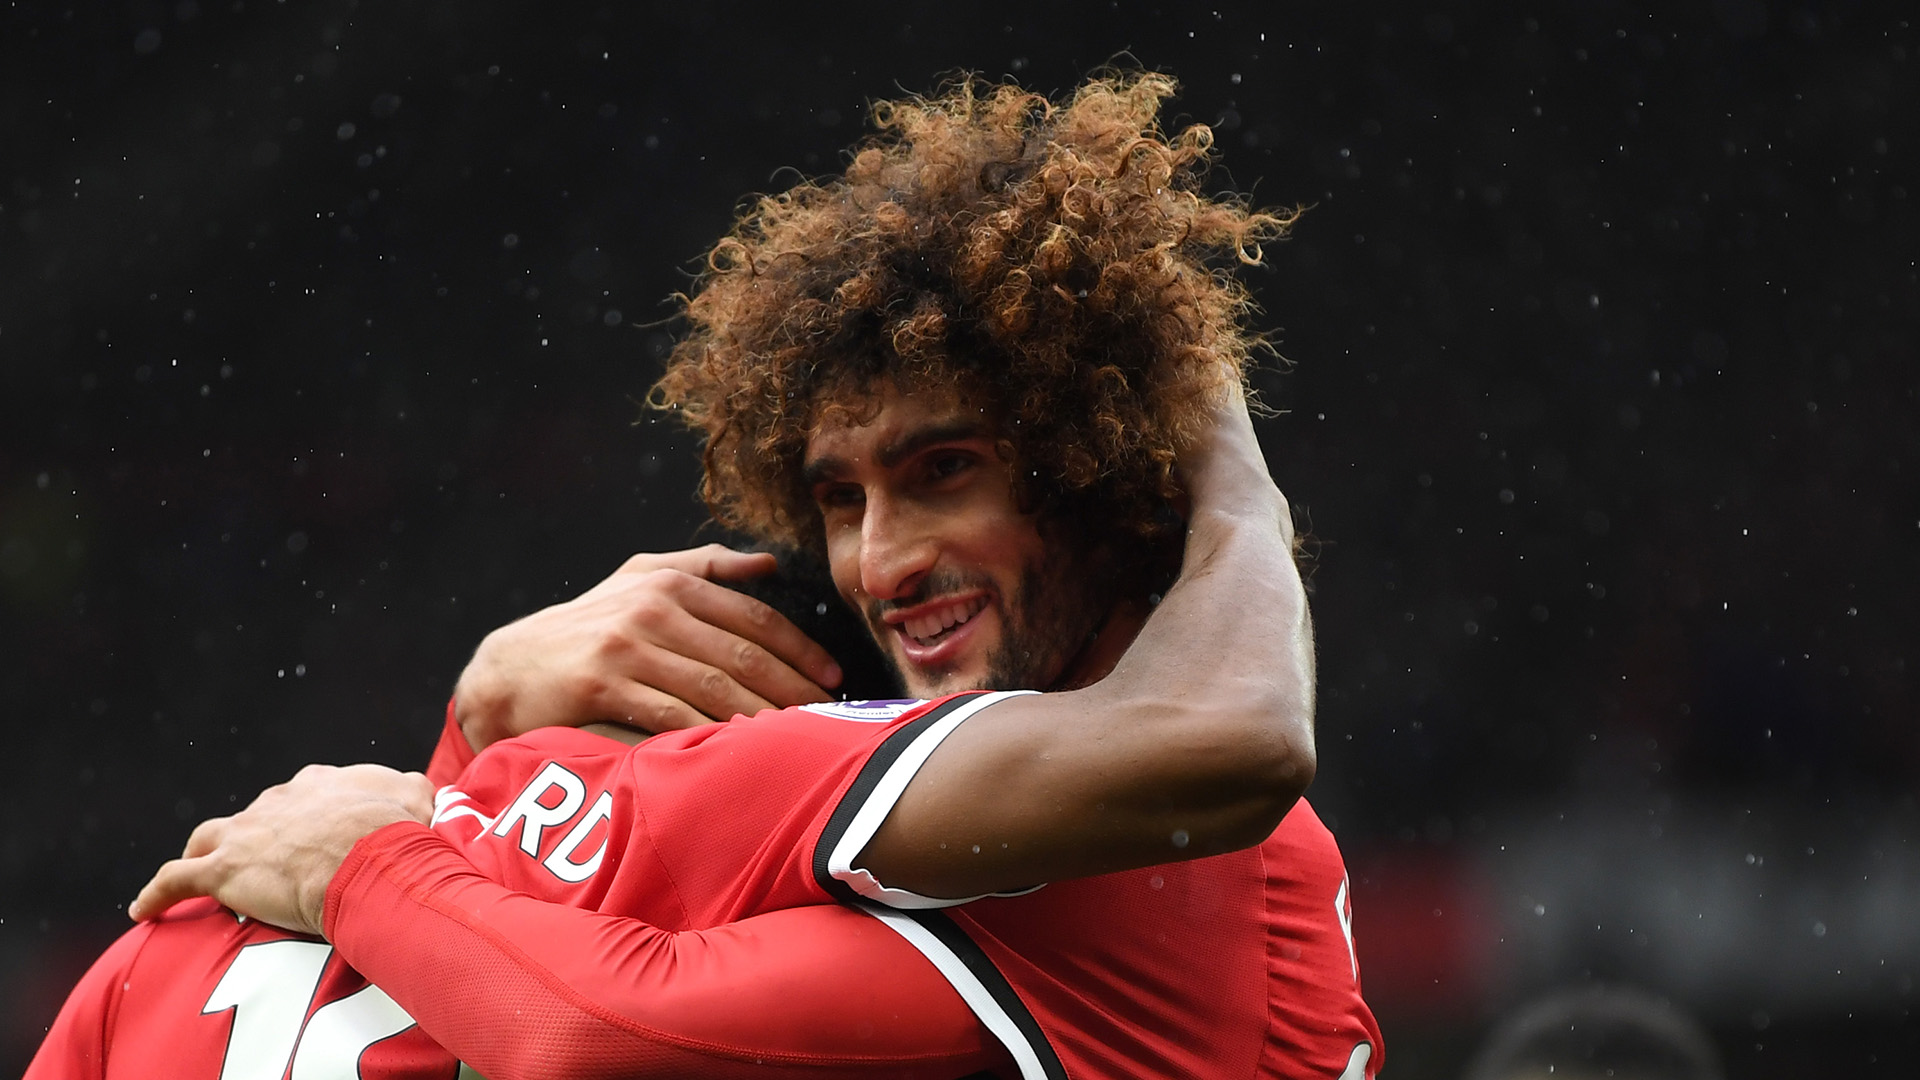 marouane fellaini manchester united msi5h6k792sy1x71wb0sw8x7g - ROUND-UP of 30/1/2018 TRANSFER NEWS, DONE DEALS AND RUMOURS